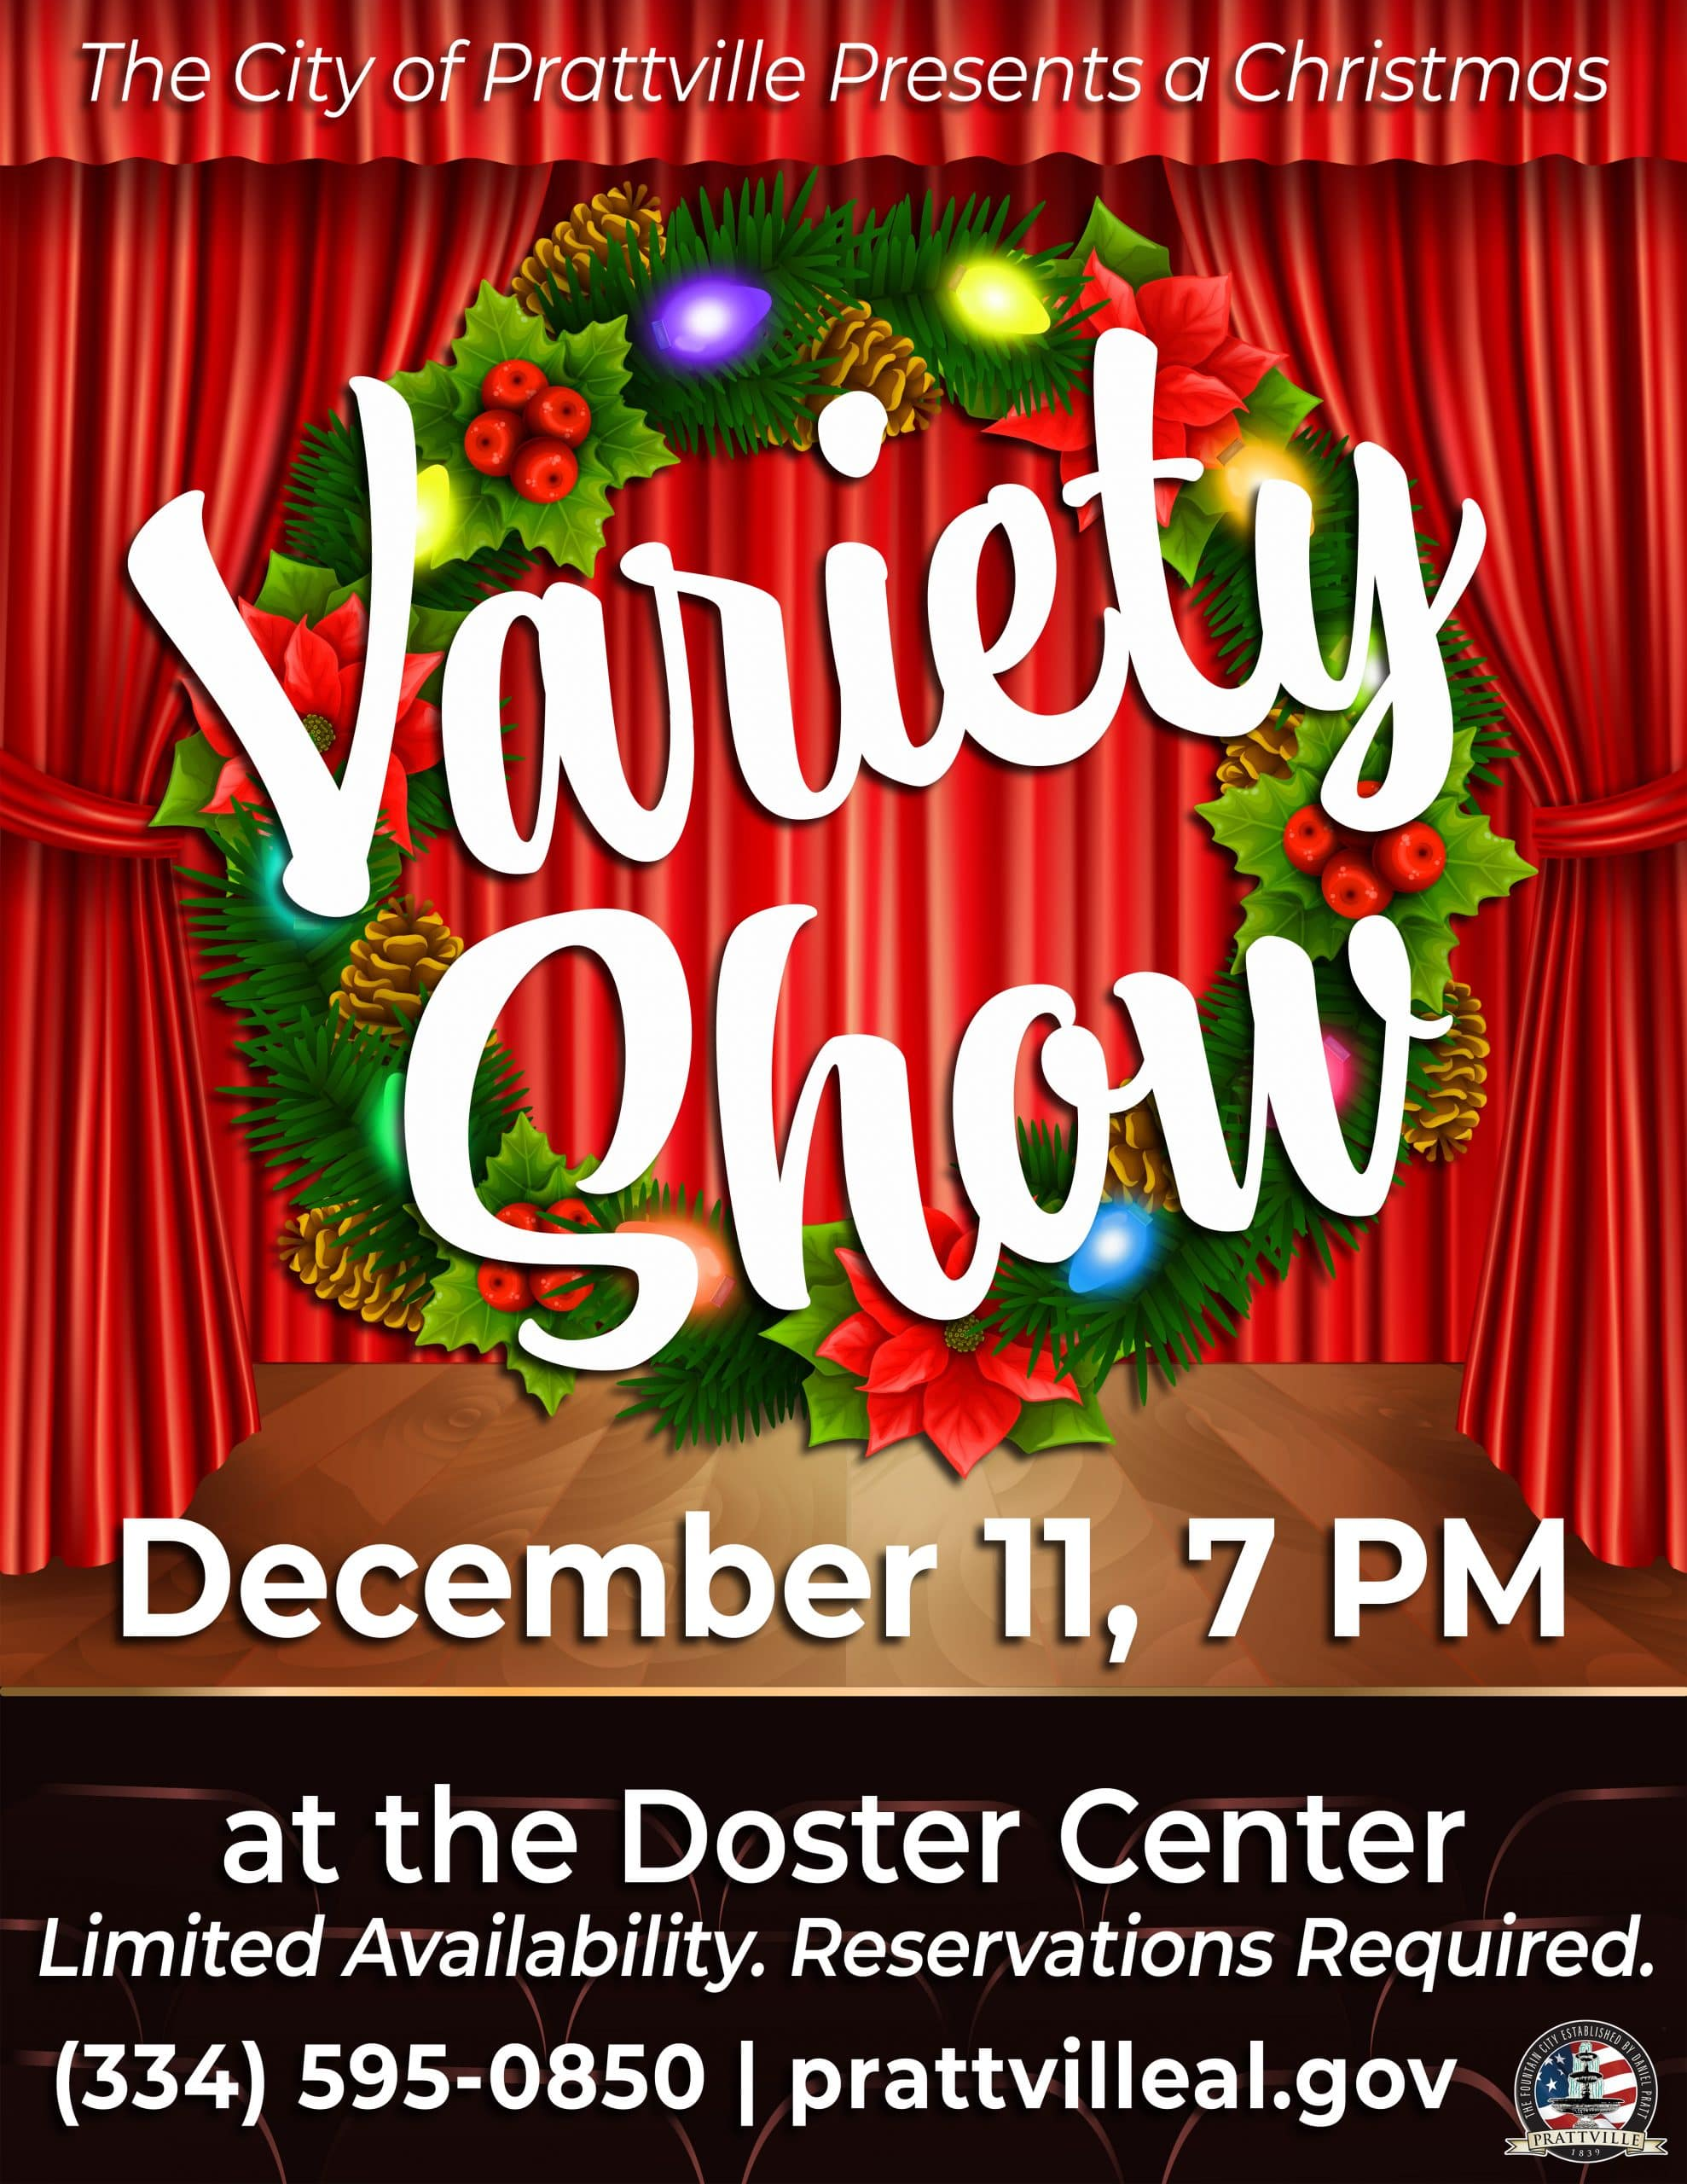 Prattville Christmas 2020 Prattville to Hold Christmas Variety Show at Doster Center Dec. 11